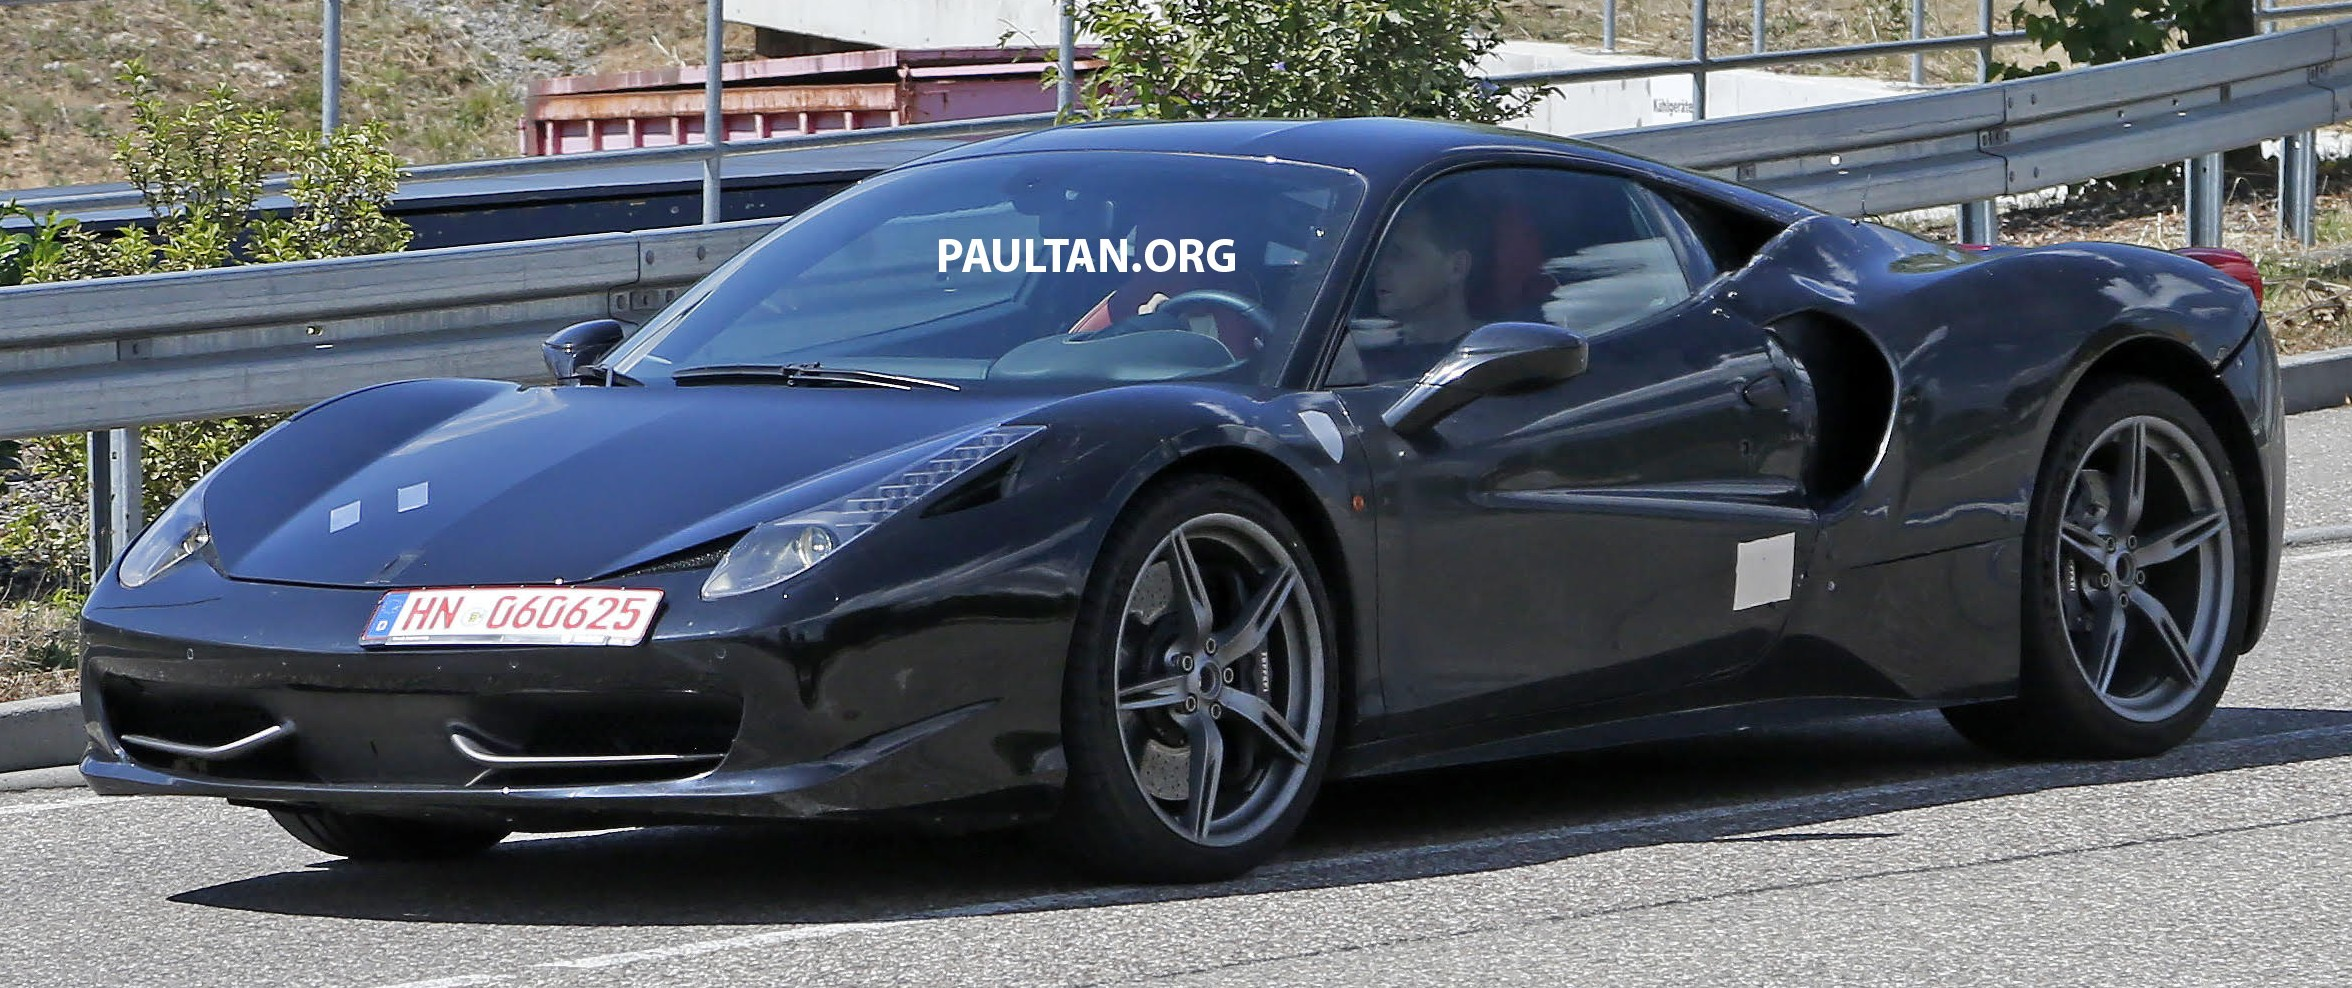 SPIED: 2019 Ferrari Dino captured for the first time!